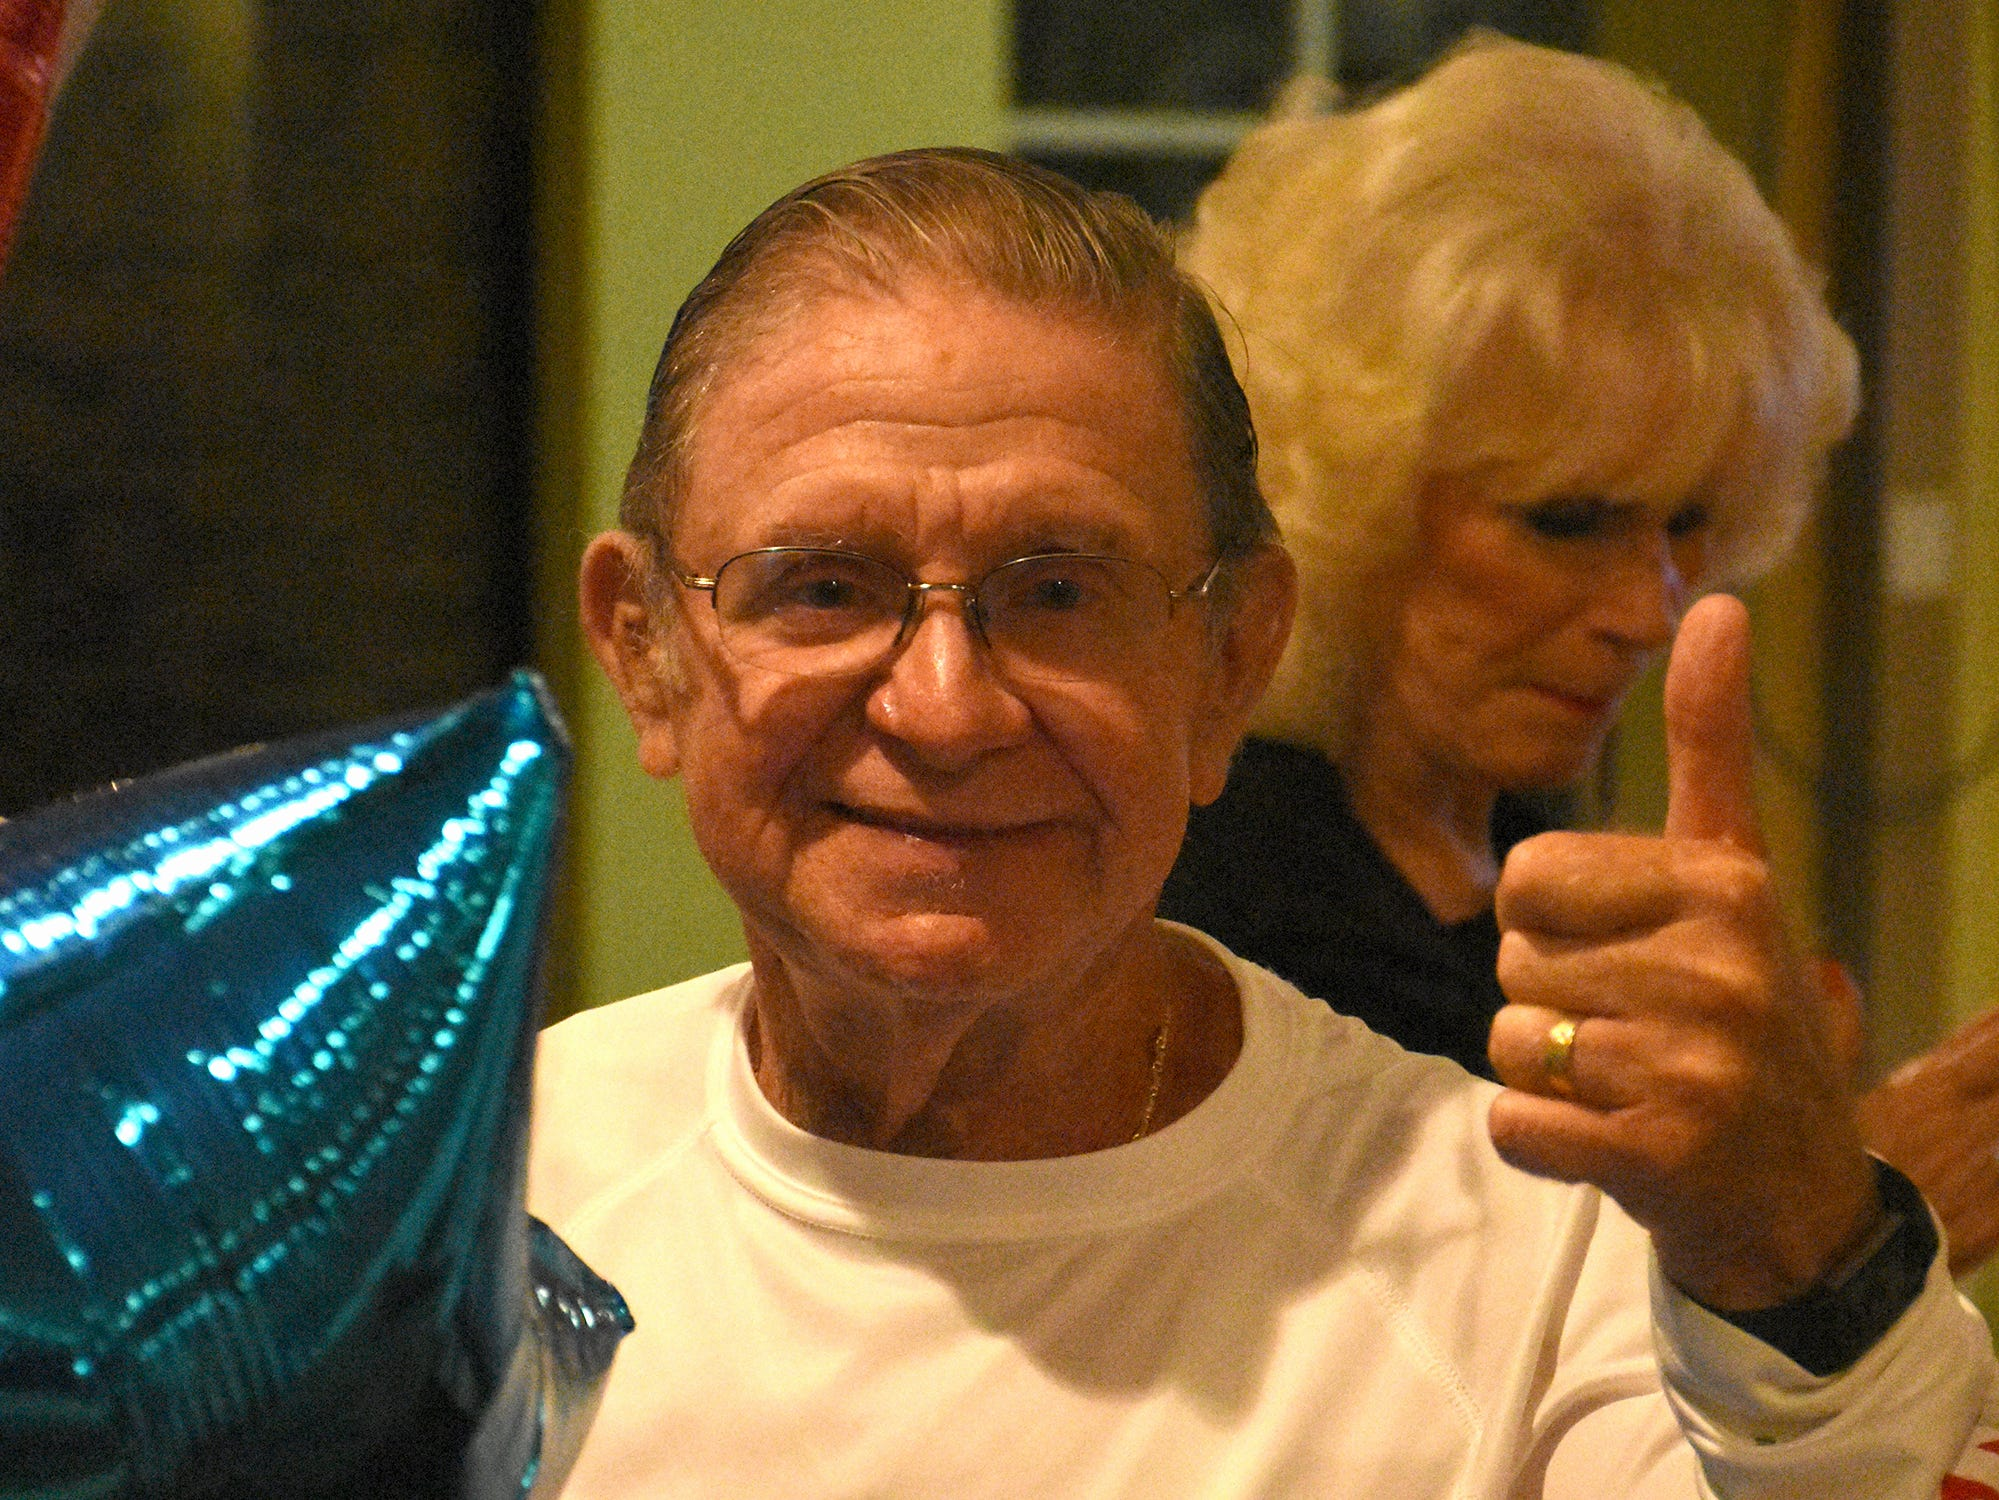 Victor Rios gives a thumbs up at Stonewalls Tavern to celebrate his re-election. Marco Island voters elected Erik Bredhnitz and Sam Young along with re-electing incumbent Victor Rios for four year temrs on the Marco Island City Council Tuesday evening.